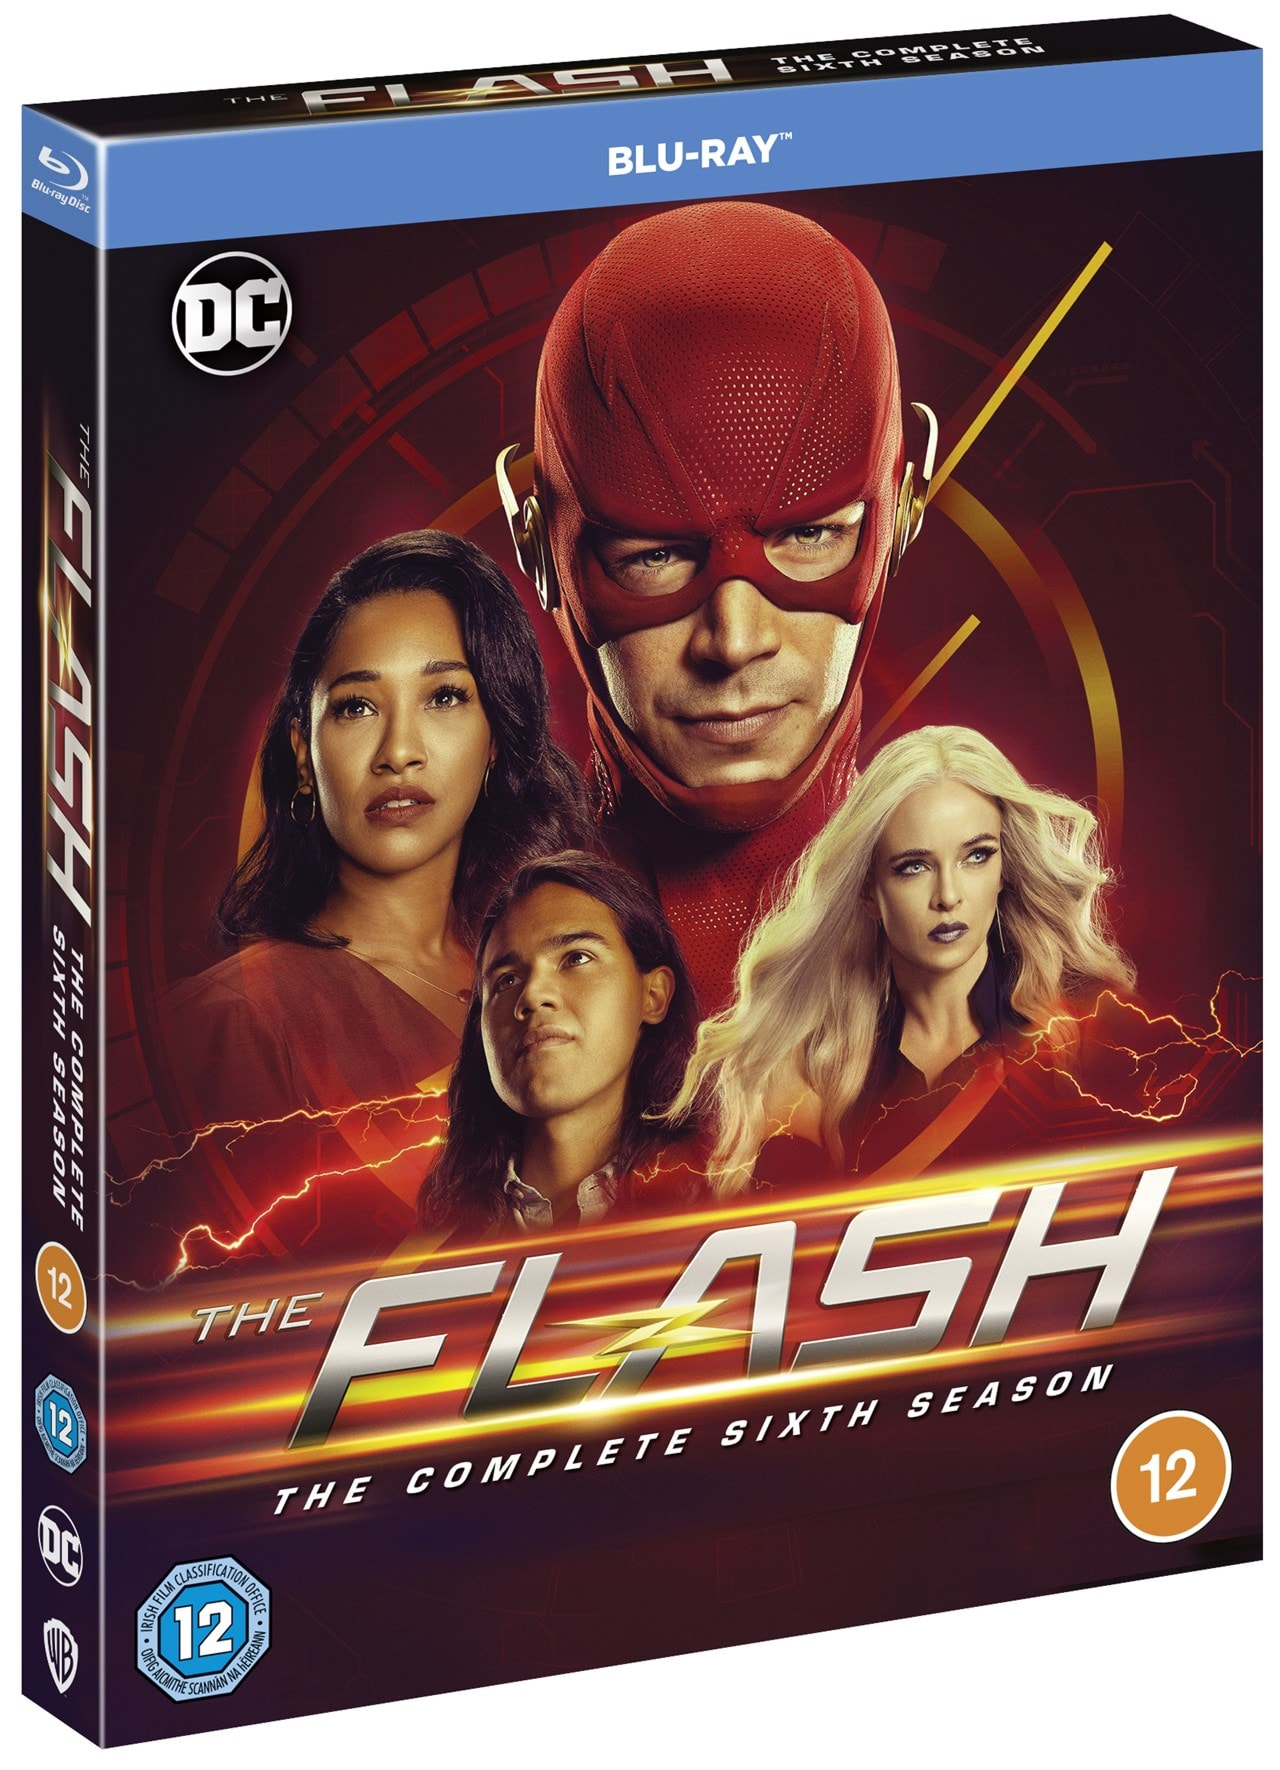 The Flash: The Complete Sixth Season - 2